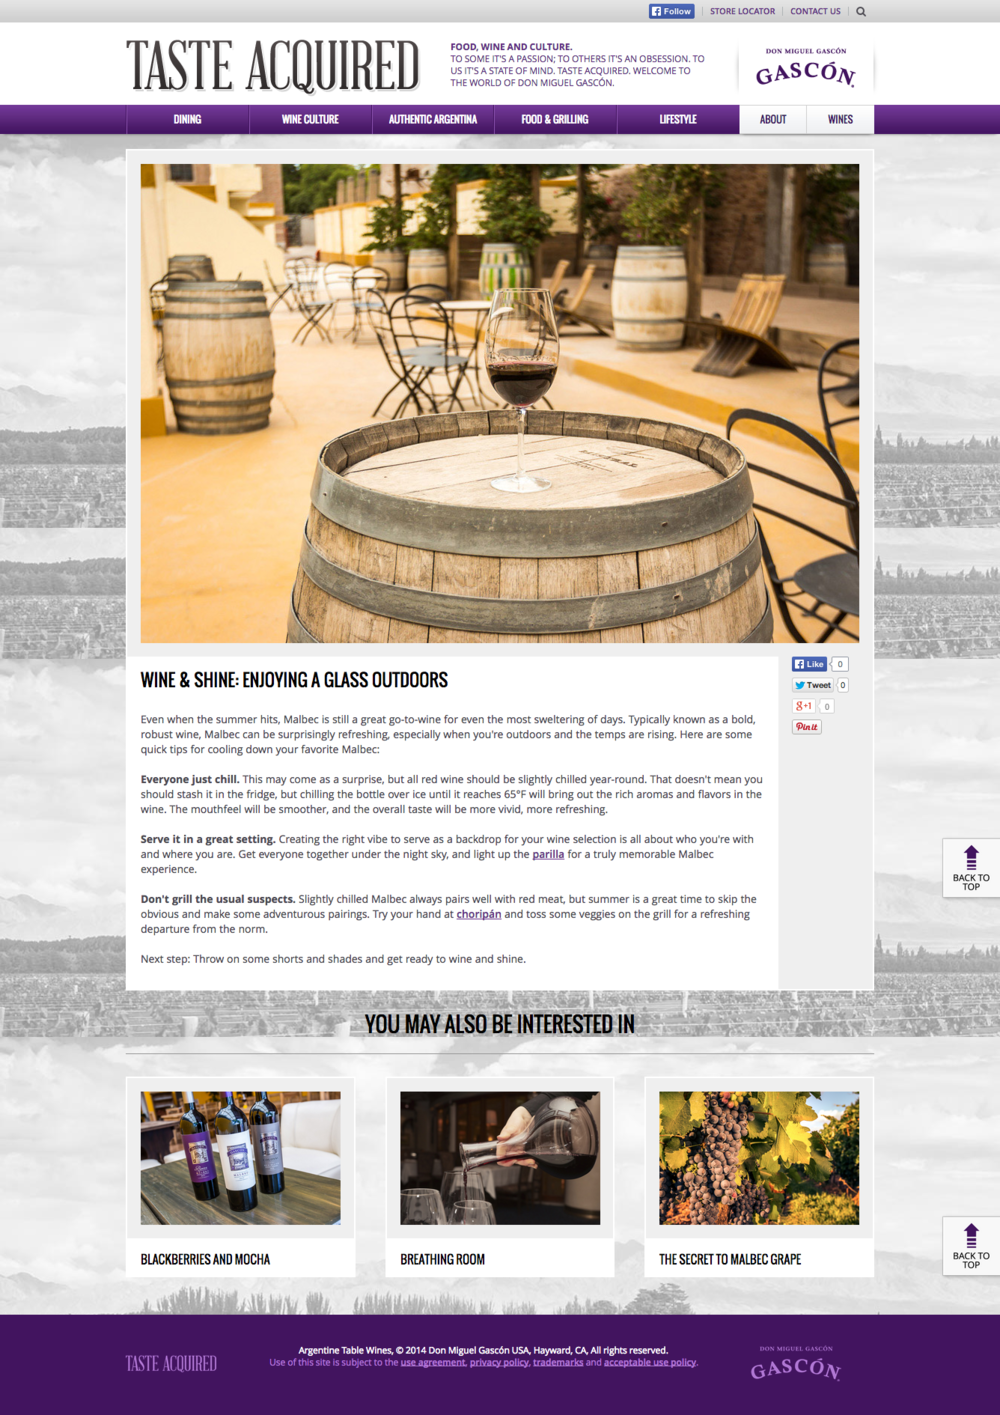 screencapture-www-gasconwine-com-Wine-Culture-enjoying-wine-outdoors-php.png